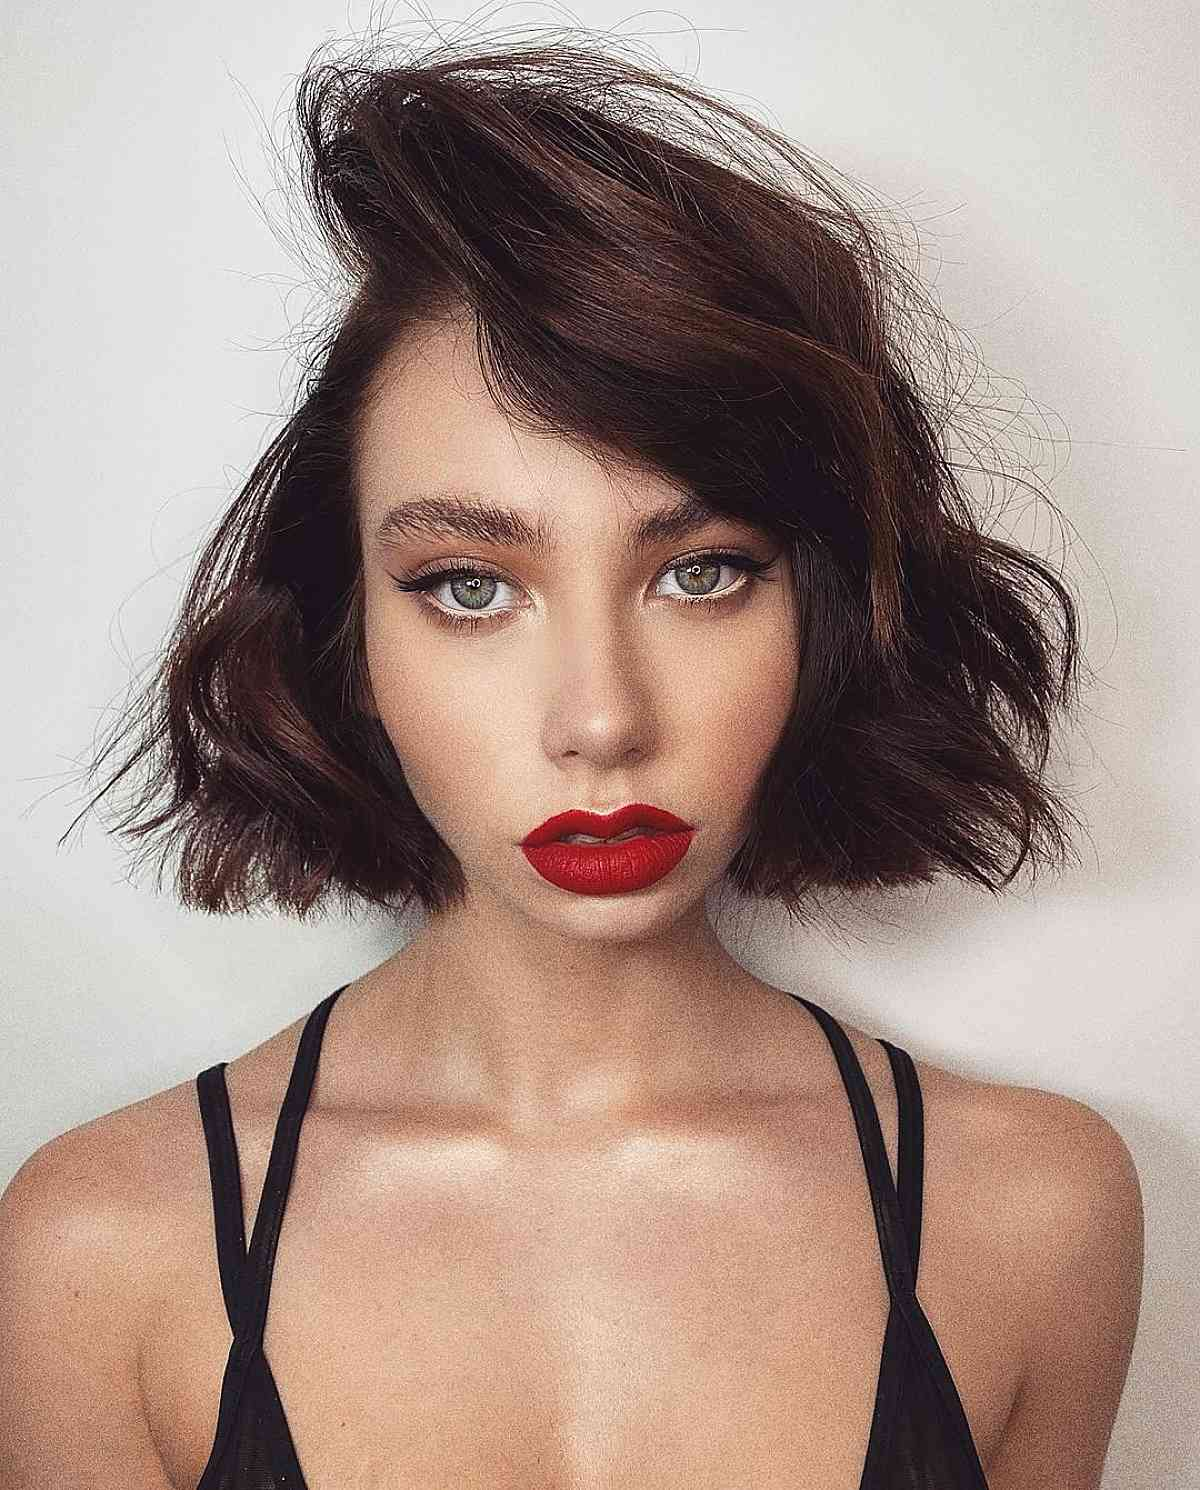 20 Very Short Bob Haircuts for a Chic and Bold Look